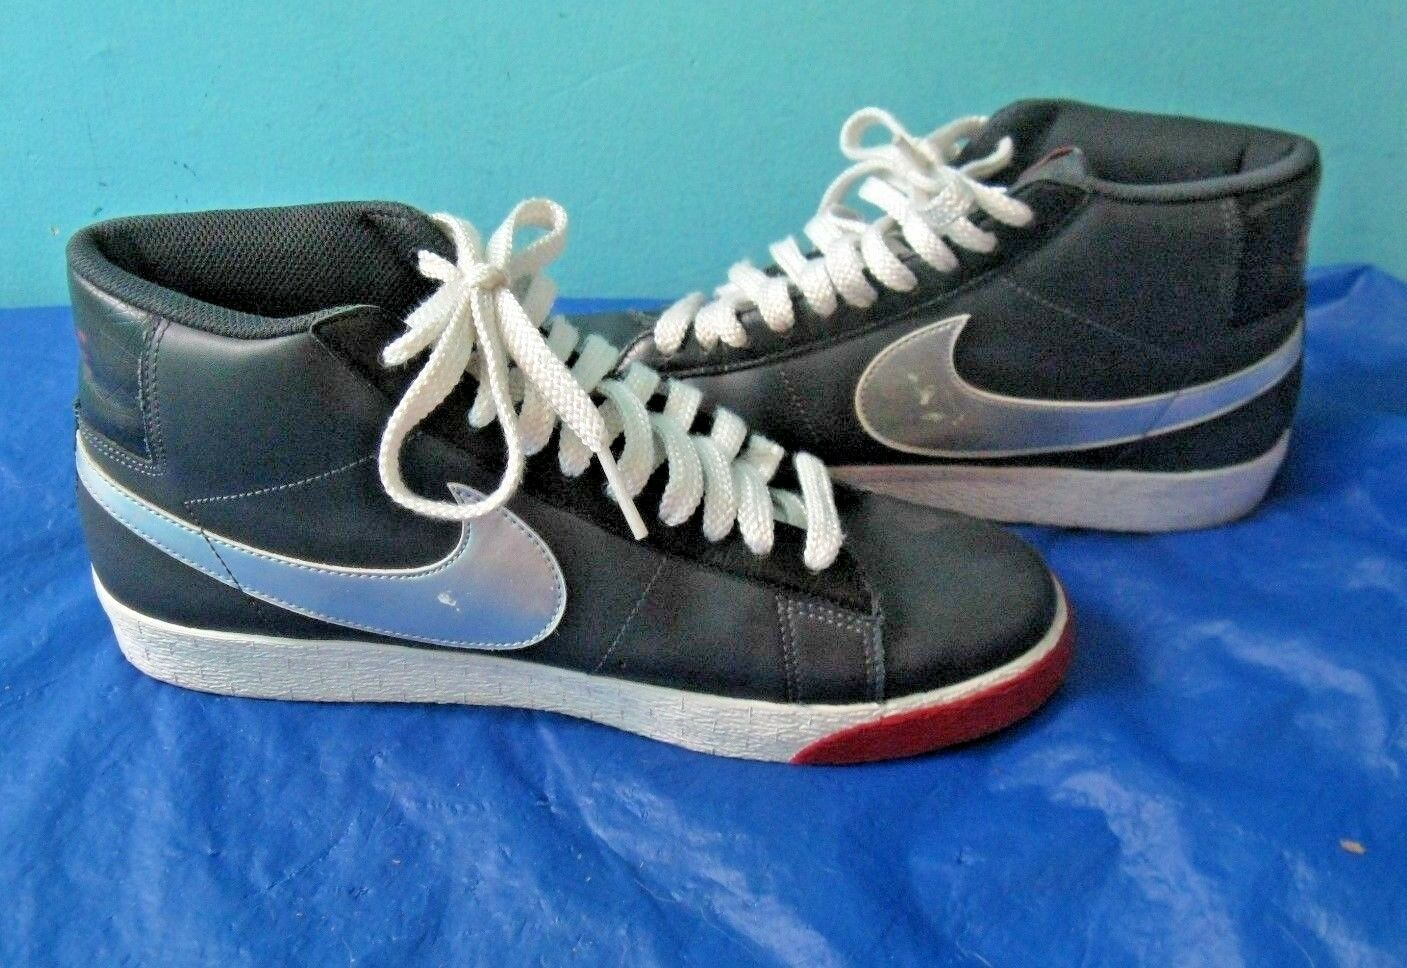 1e9edf20f6273f Nike Blazer High Anthacite Silver Black Sneakers Shoes Shoes Shoes  315877-001 (Sz 10